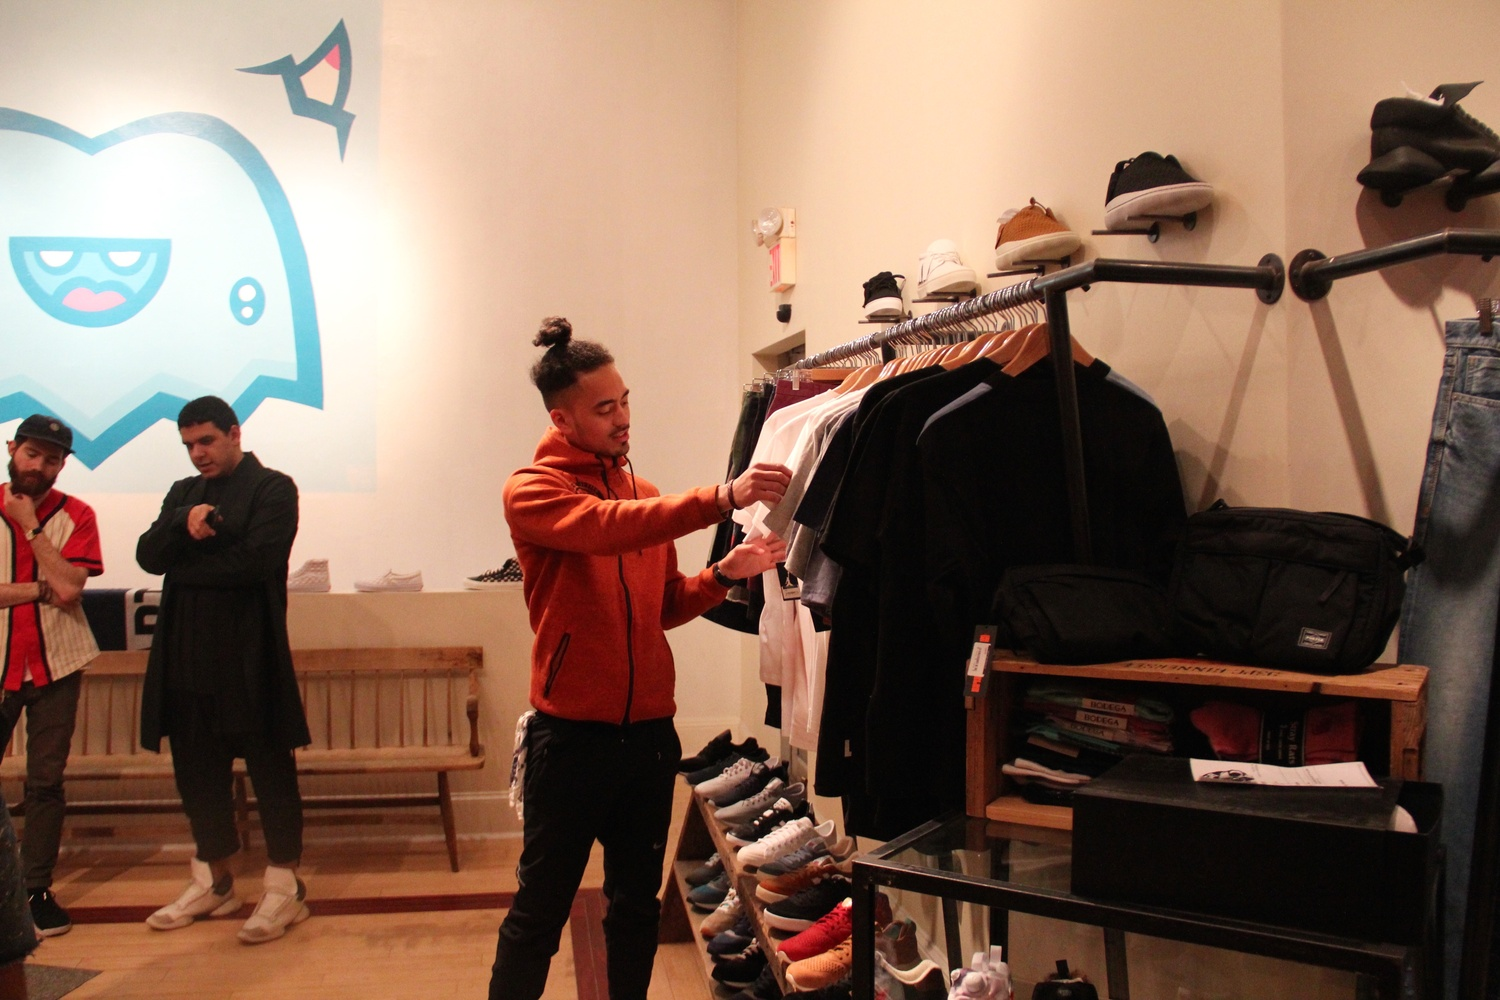 A customer looks through t-shirts. The store sells simple, modern clothes to suit Boston's young, hip demographic. The customers themselves wear the latest styles.